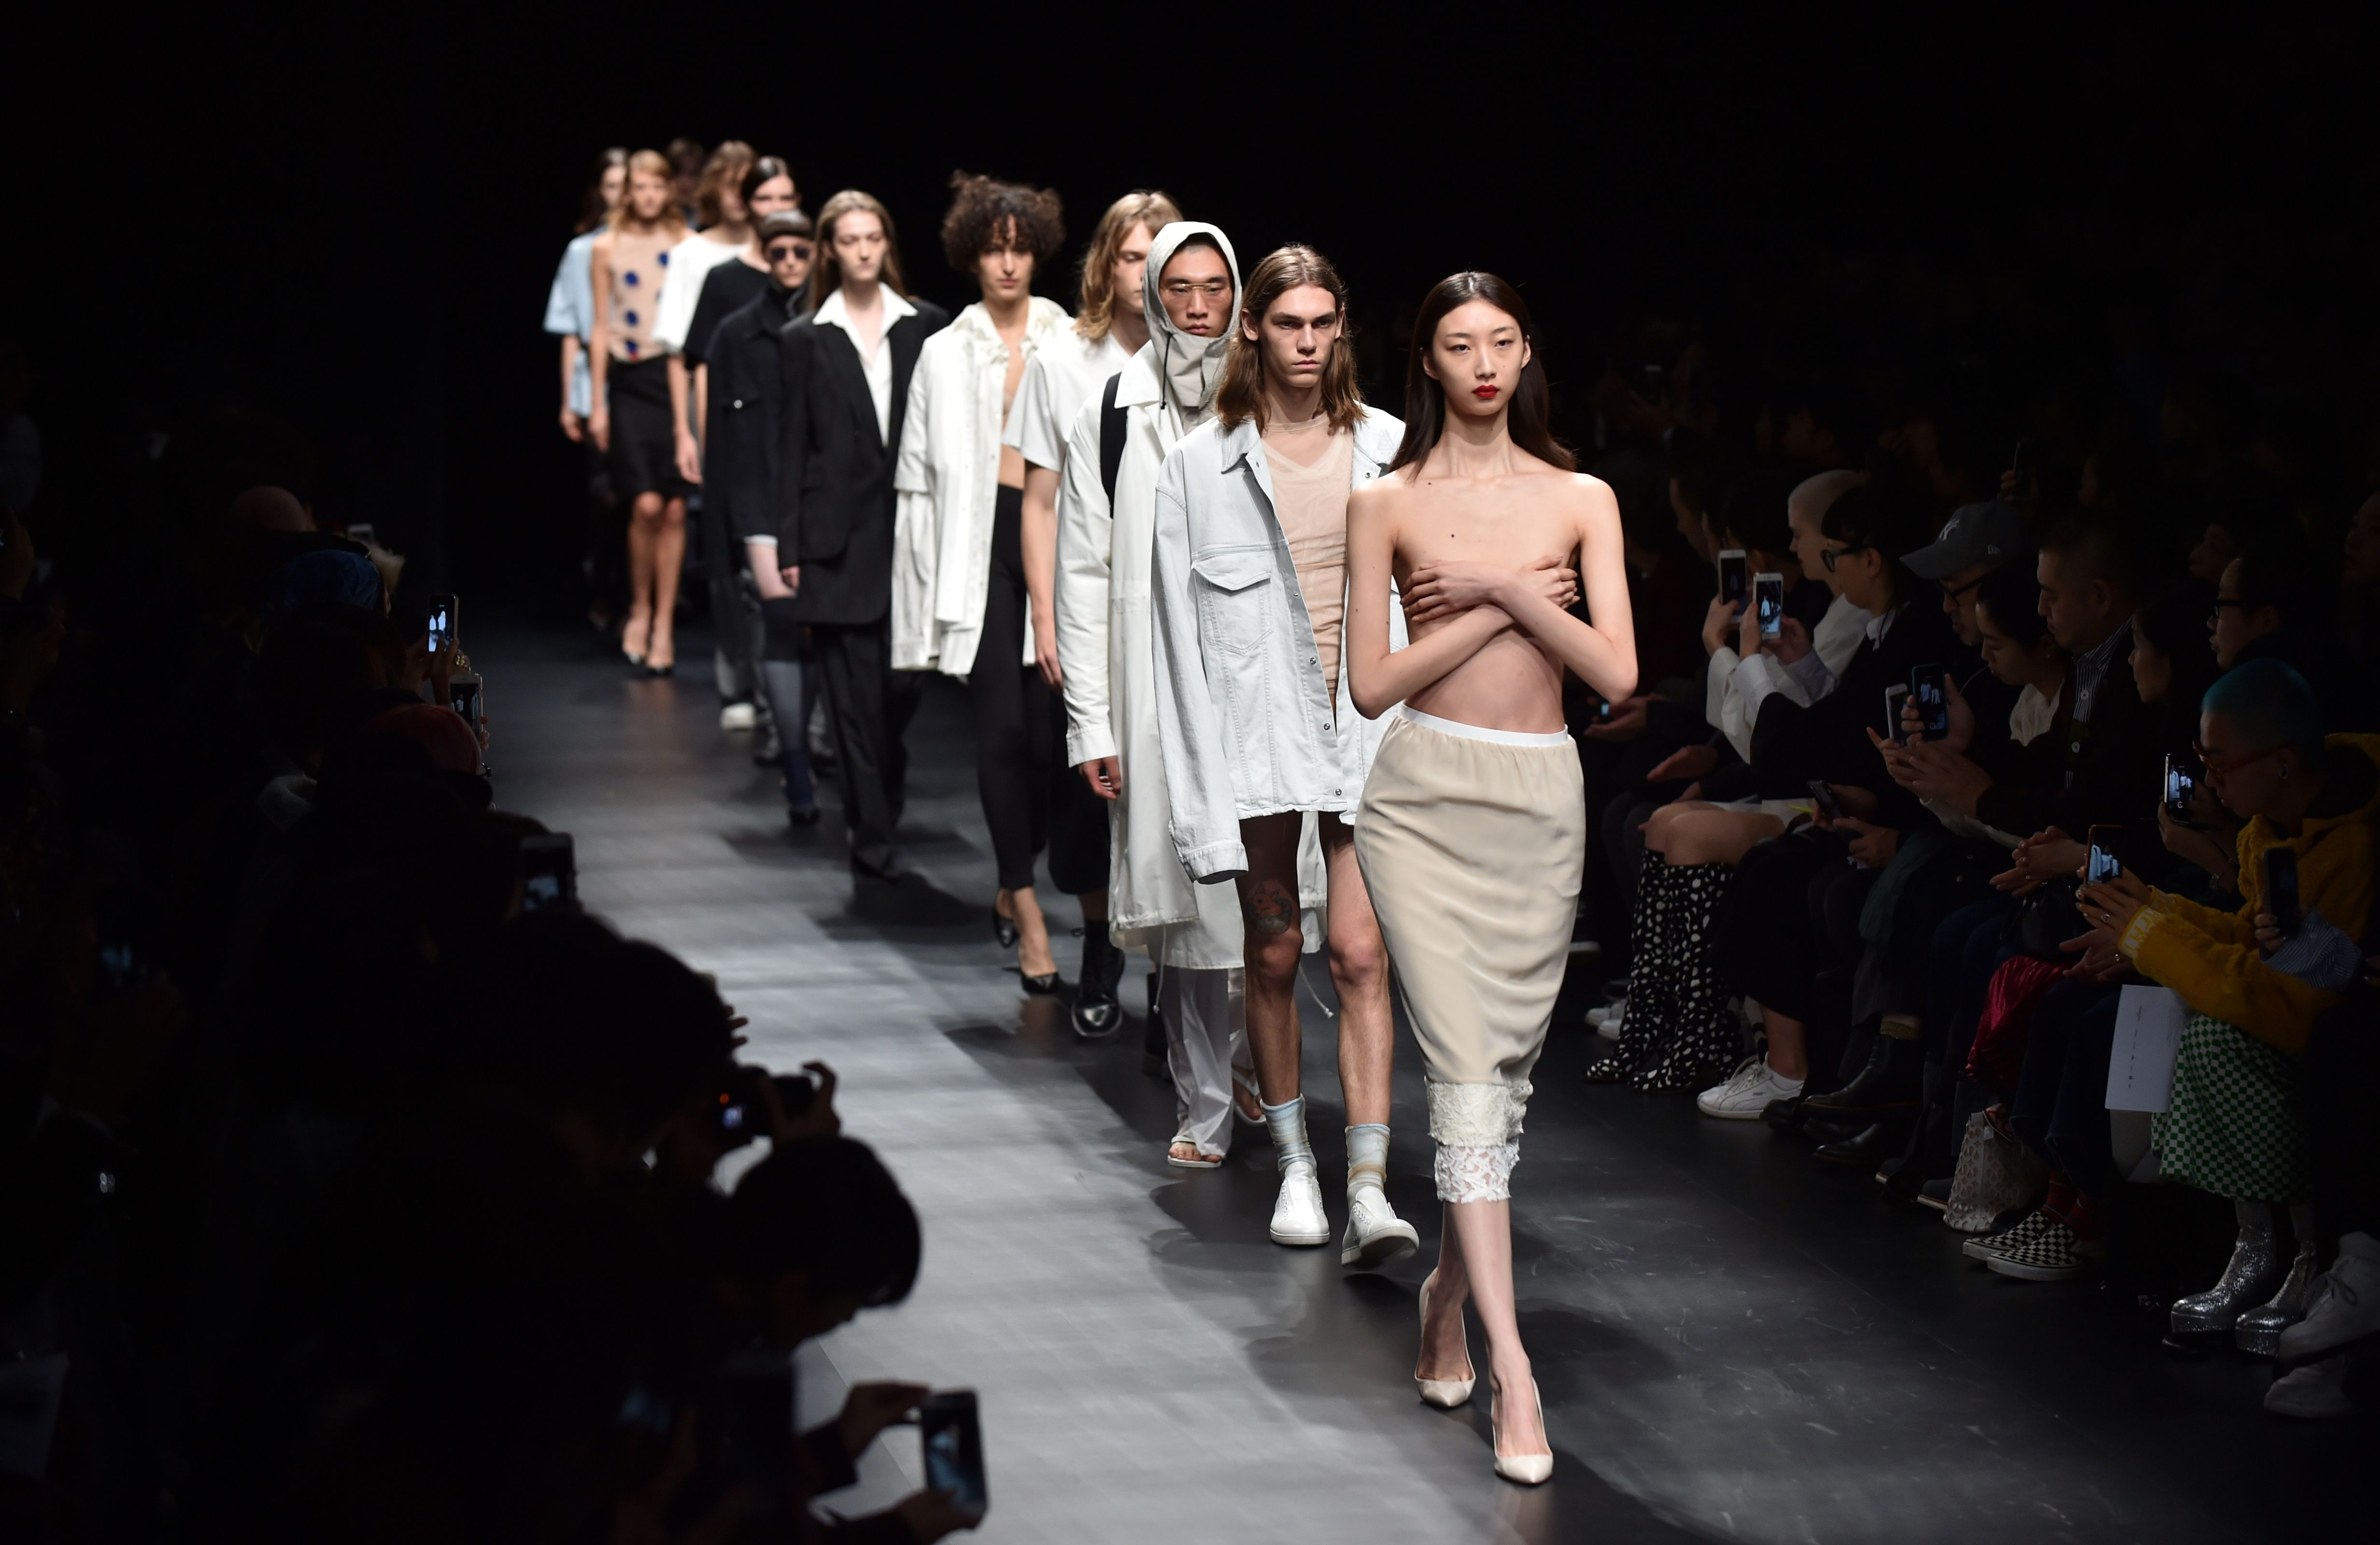 Tokyo Fashion Week Showcases More 2018 Spring Summer Designs Fashion News Conversations About Her